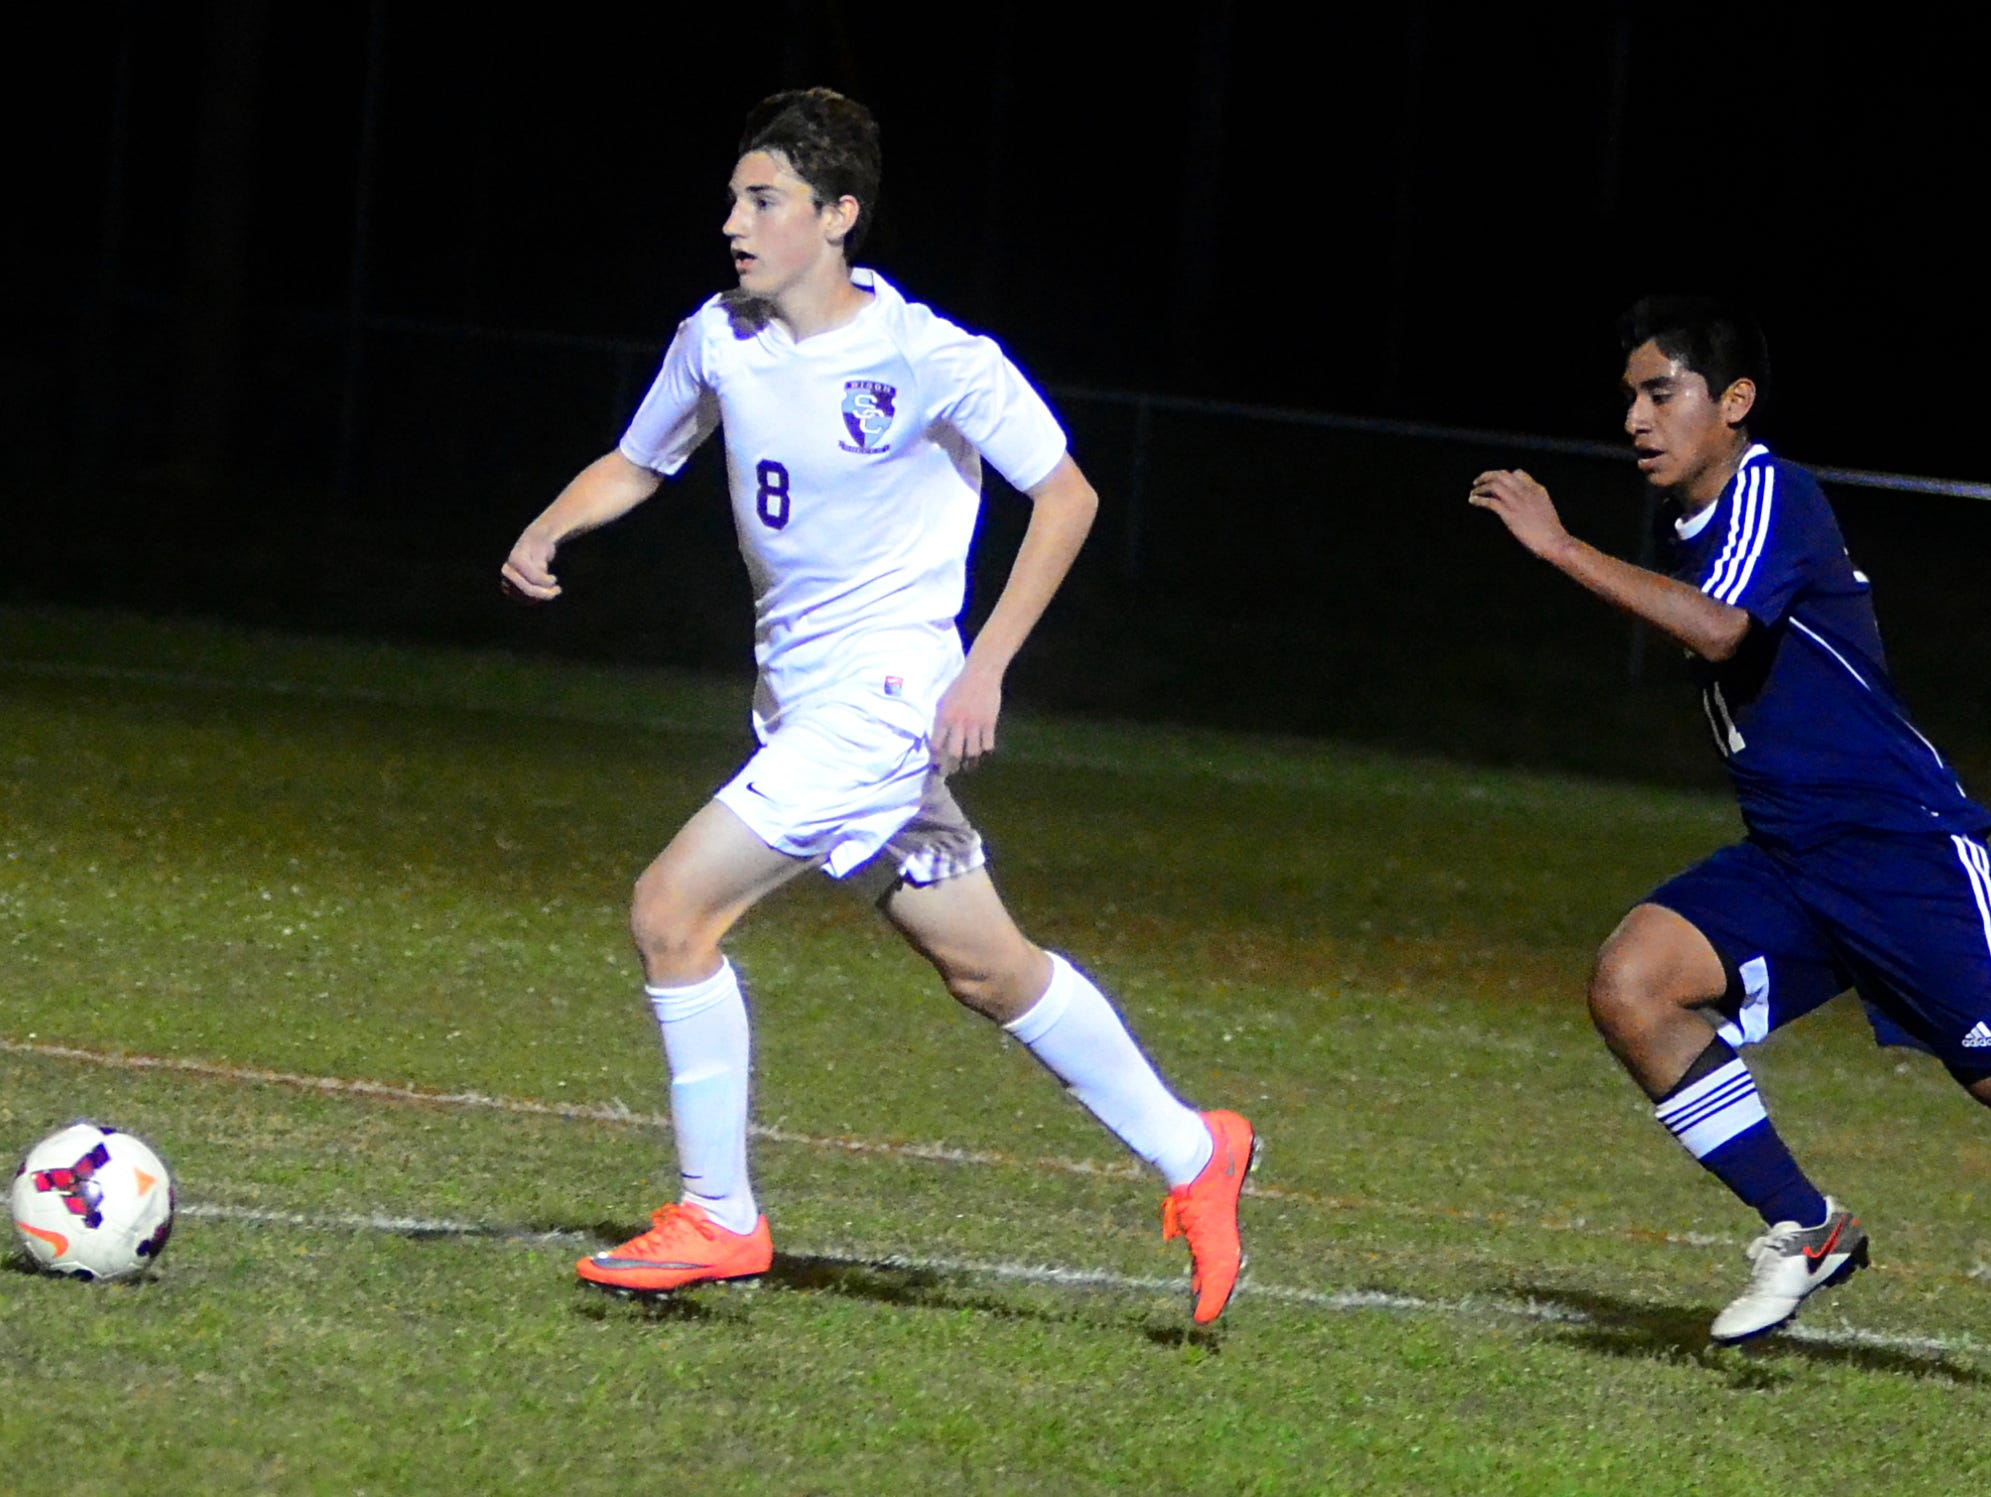 Station Camp High freshman Riley Indermuehle dribbles away from Cookeville's Eddie Gaspar during second-half action. Indermuehle scored a goal in the Bison's 3-0 victory.